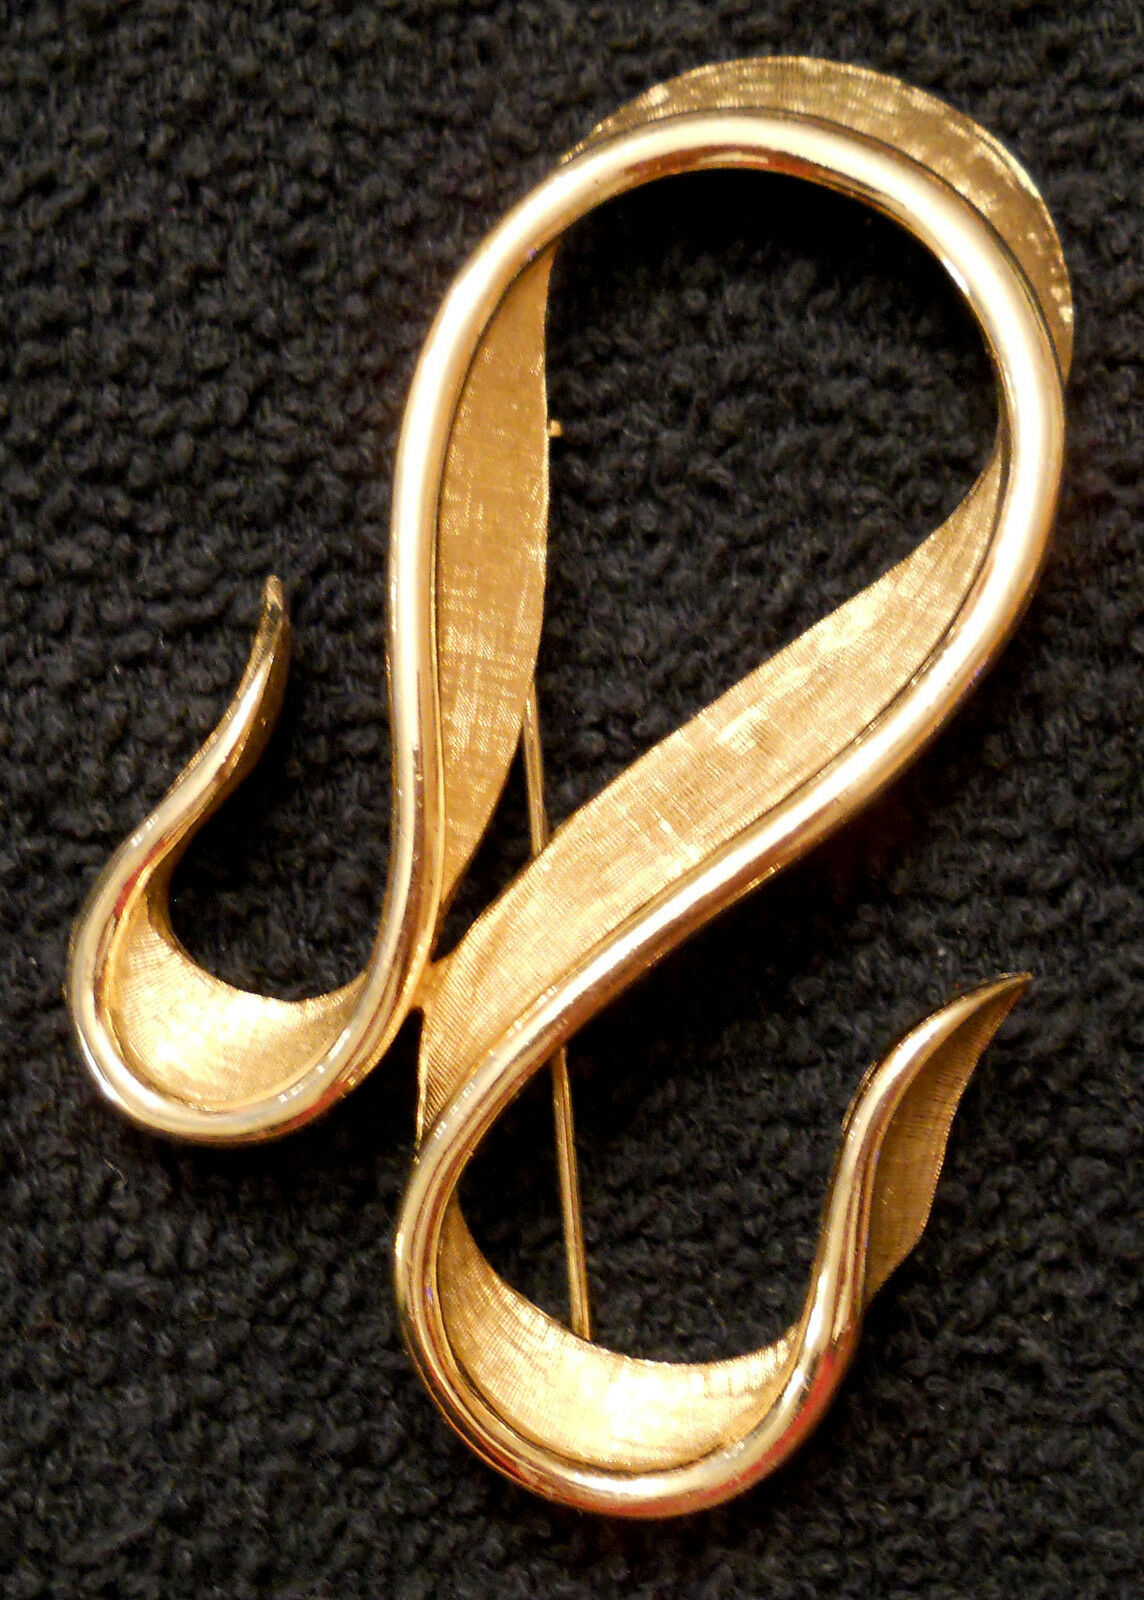 Primary image for Marcel Boucher Statement PIN Avon Belleville Textured Ribbon BROOCH 7507 VTG 3""